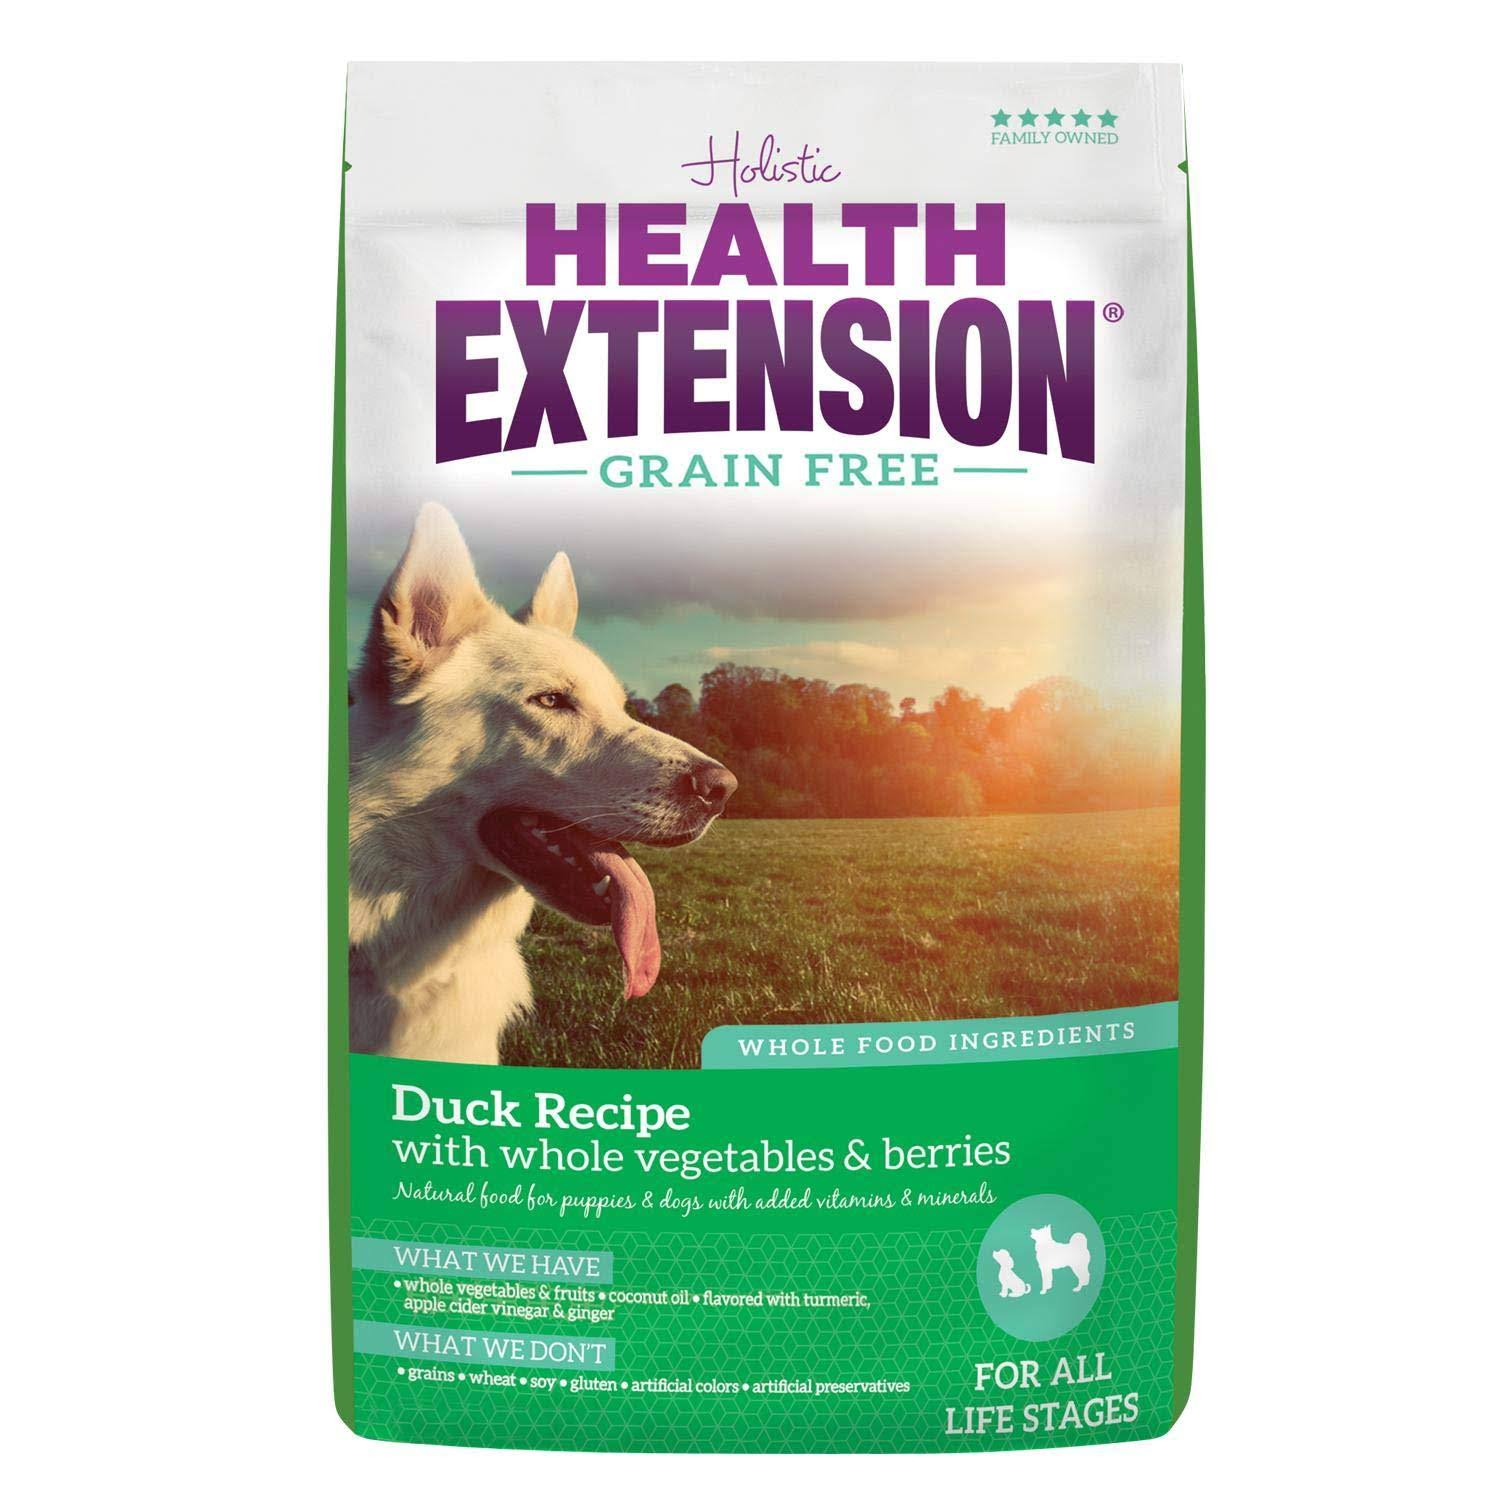 Health Extension Grain-Free Dry Dog Food - Duck Recipe